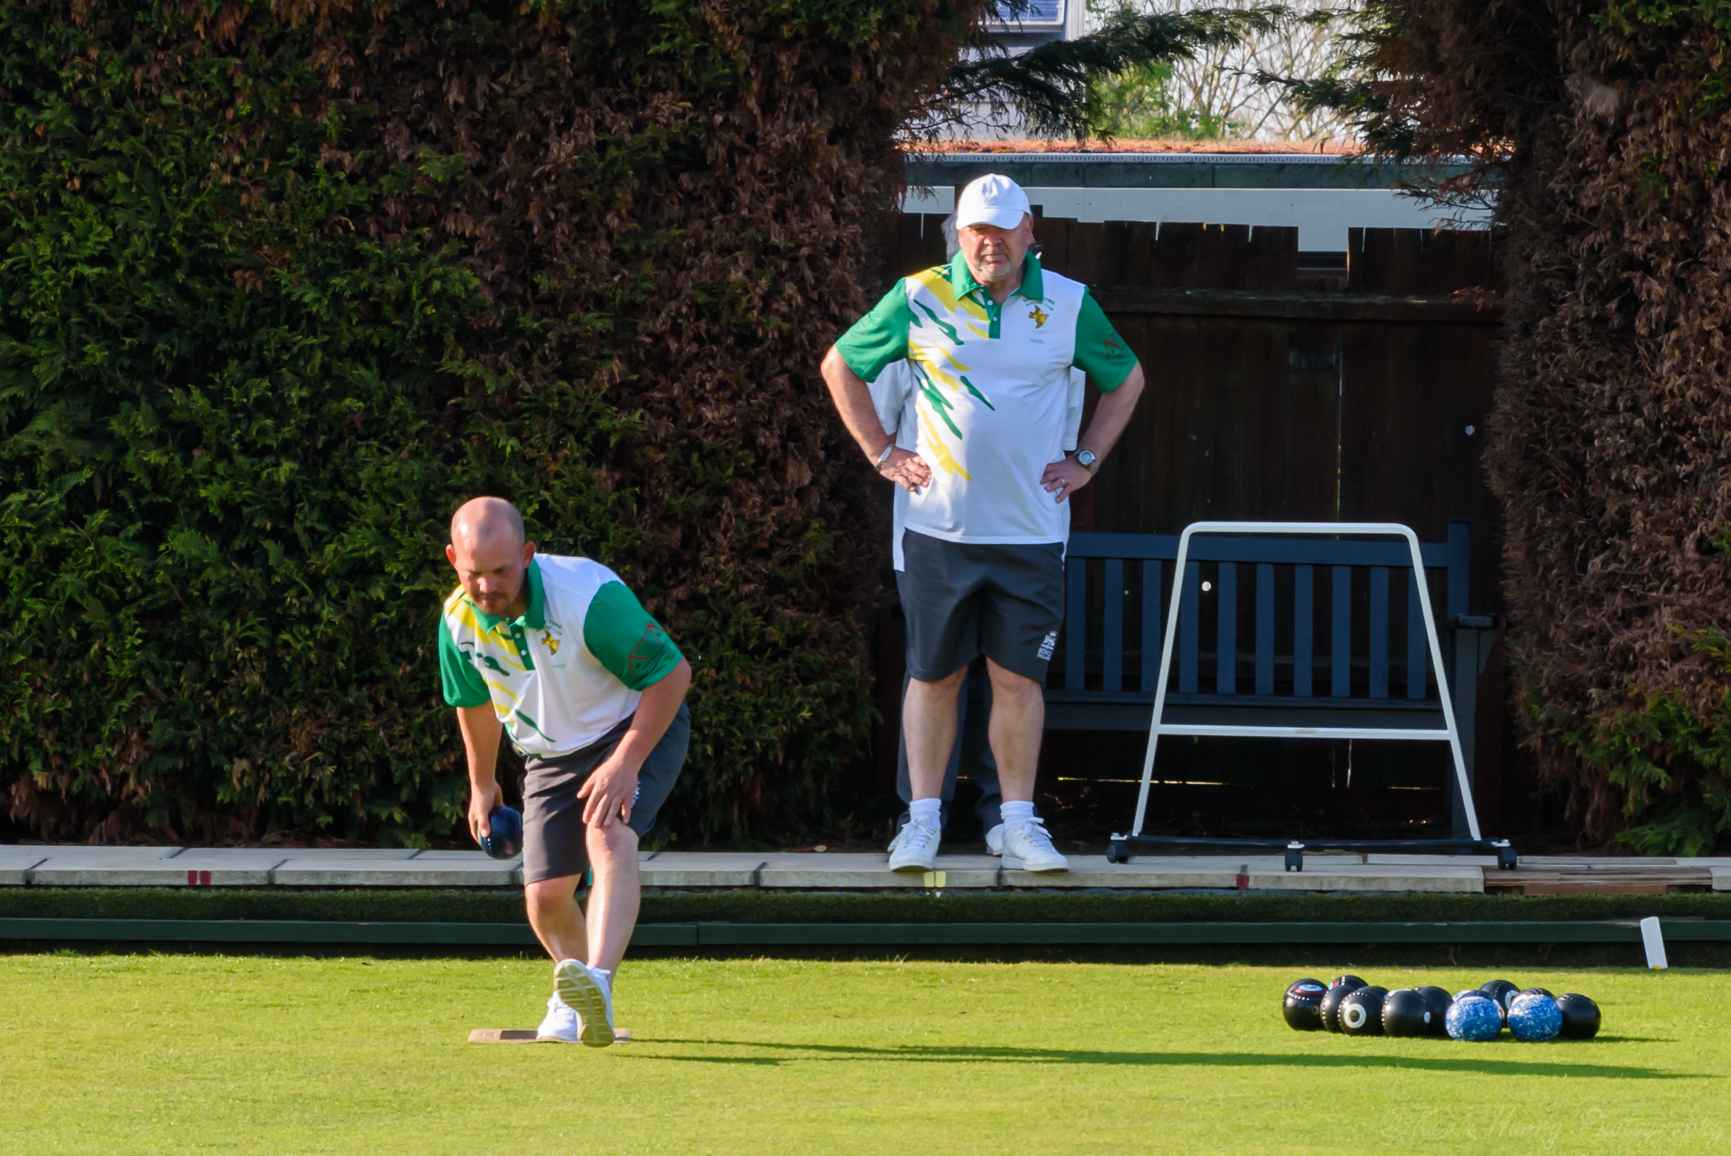 Bowls club, April 2019